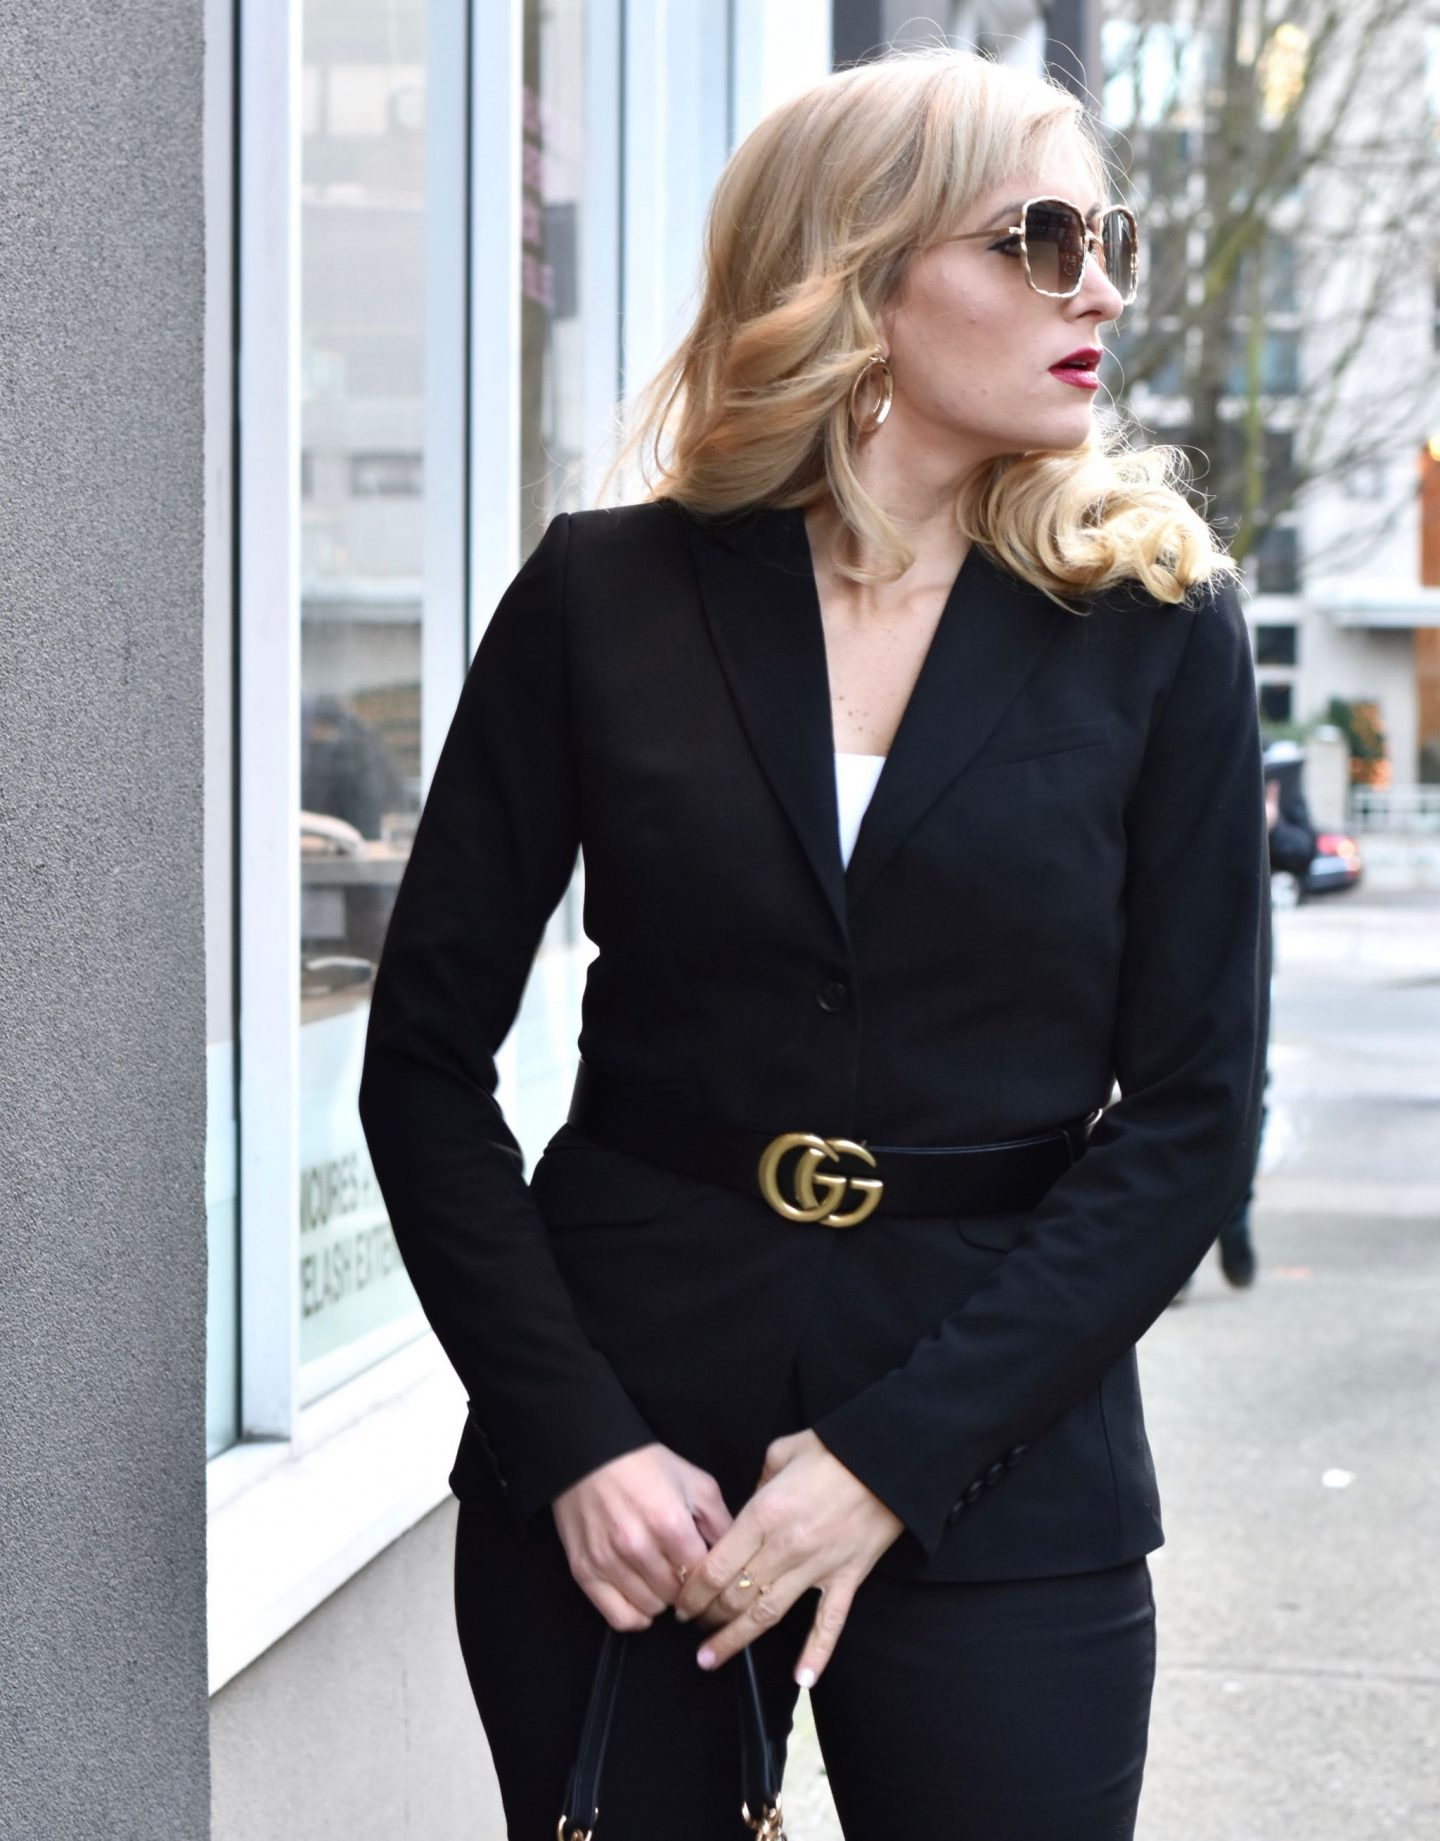 pieces to add to your work day wardrobe this fall / winter gucci dupe belt